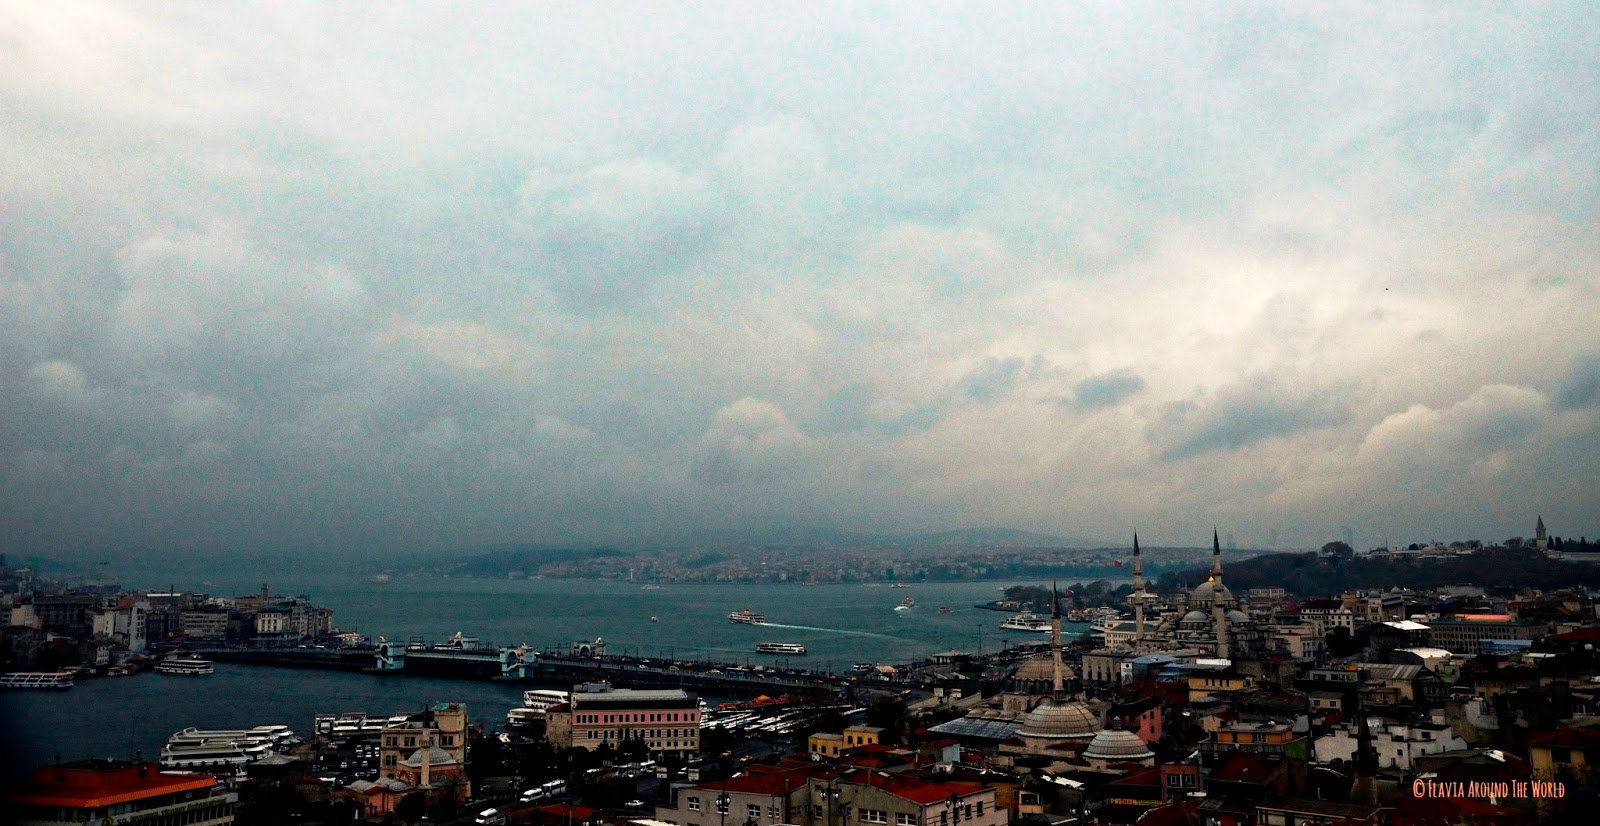 Vista de Estambul